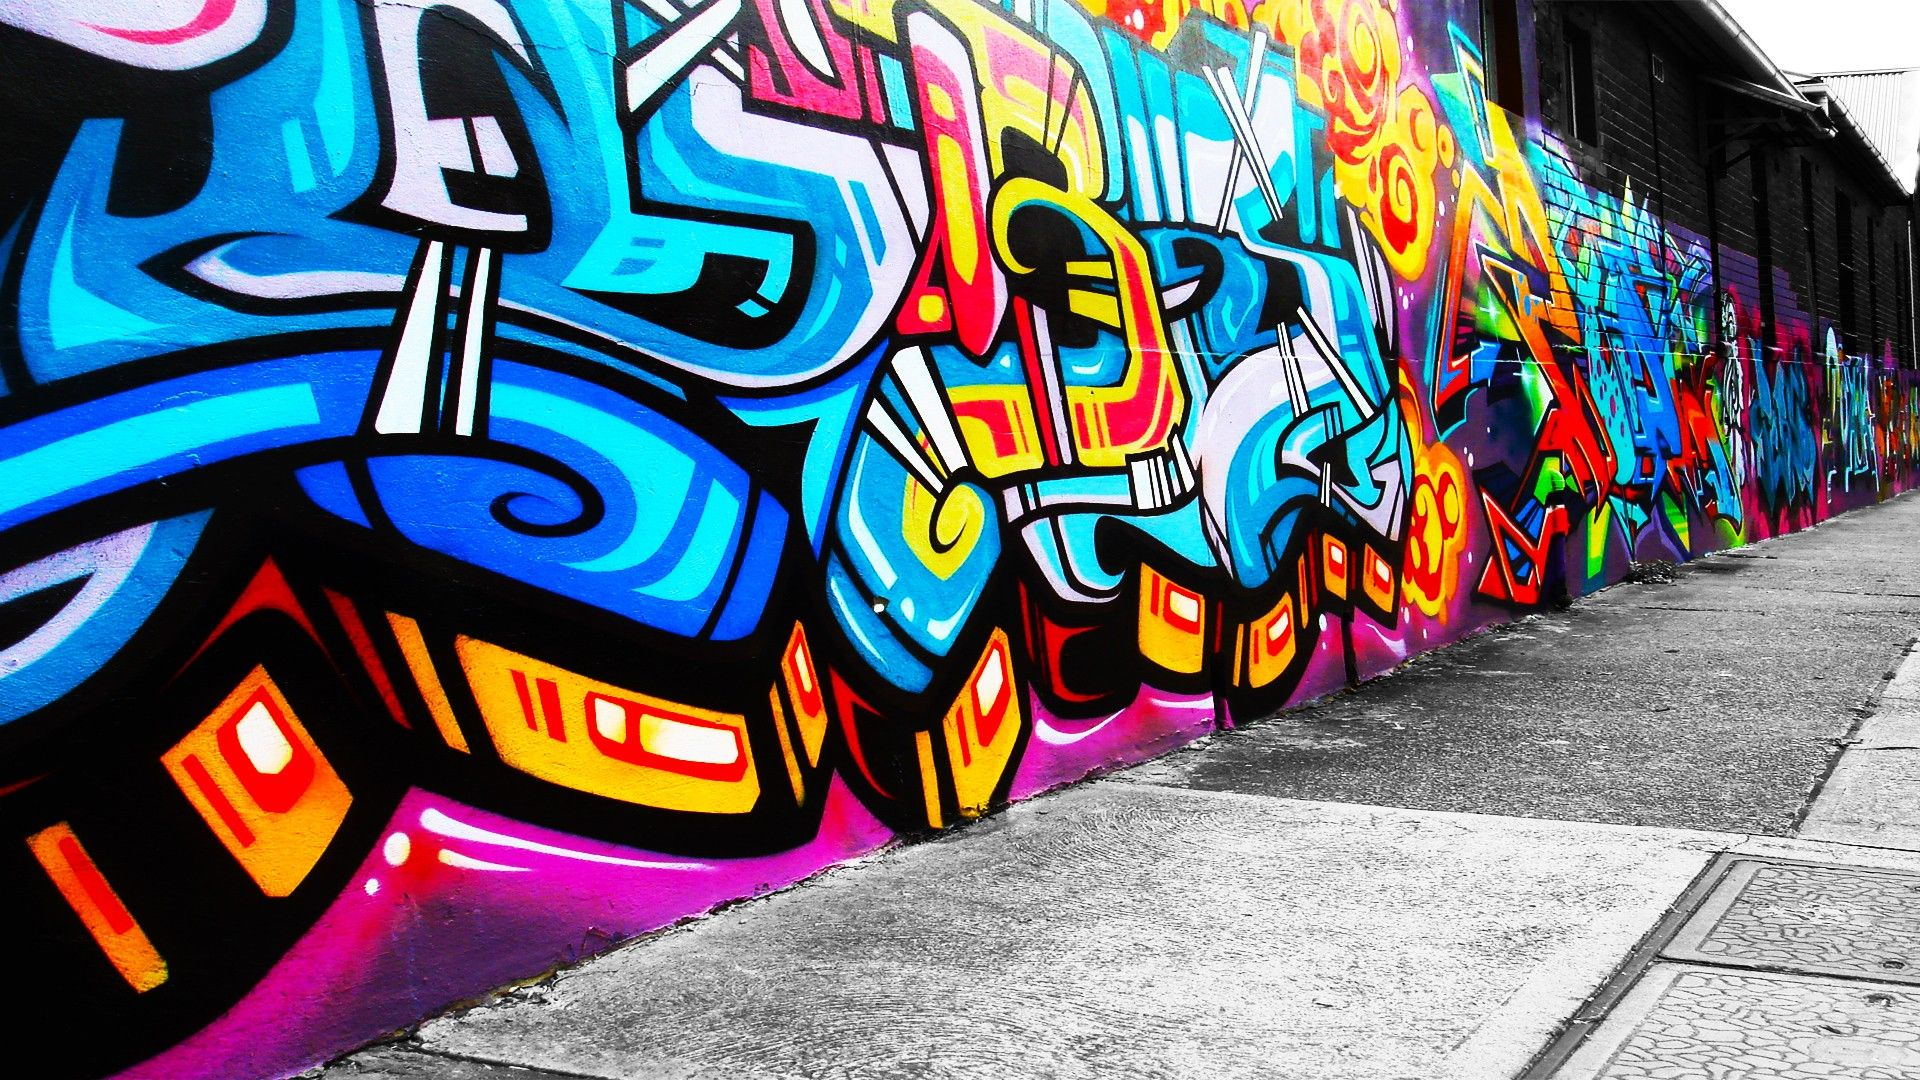 Download Latest collection of 8 Best Graffiti Street Art